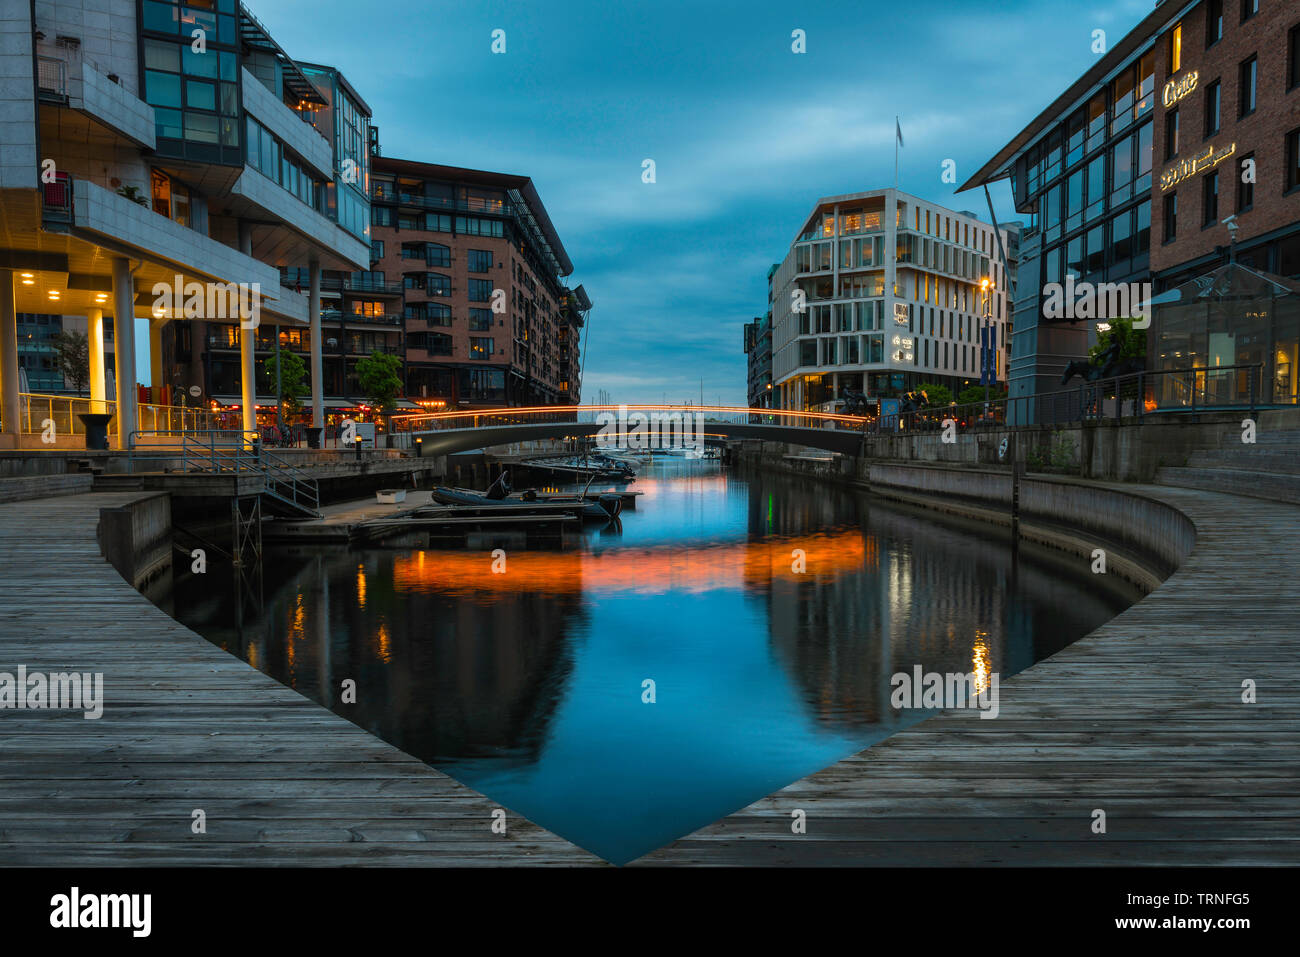 Aker Brygge Oslo, view at dusk of the harbour inlet inside the newly developed area of the Aker Brygge harbour district in Oslo, Norway. Stock Photo